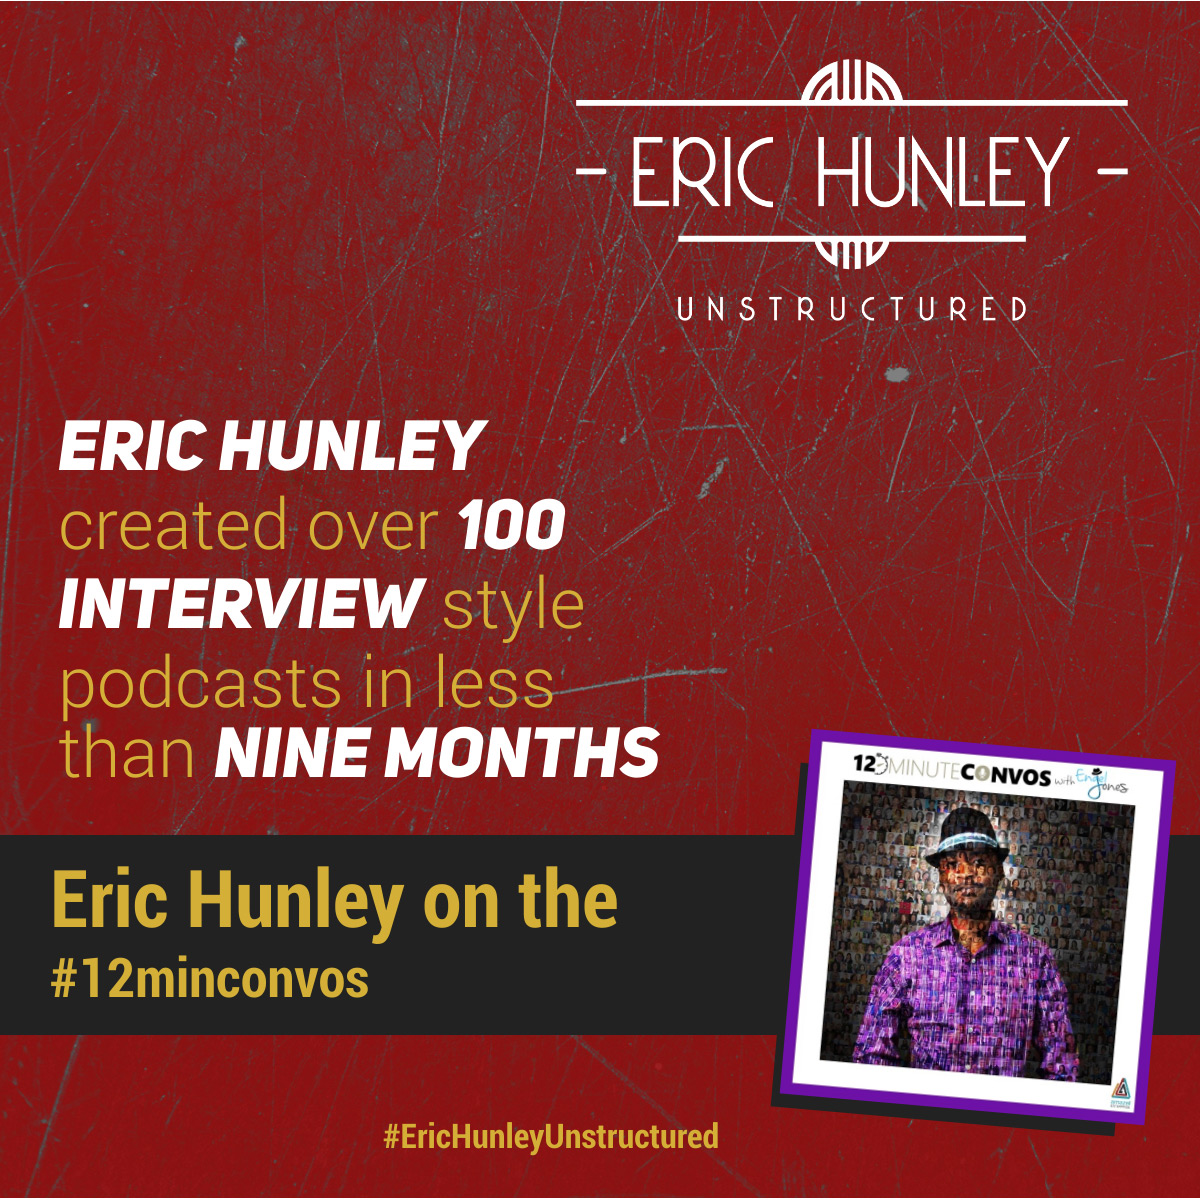 Eric Hunley Podcast Appearance Interviews - 12minconvos Podcast Square Post